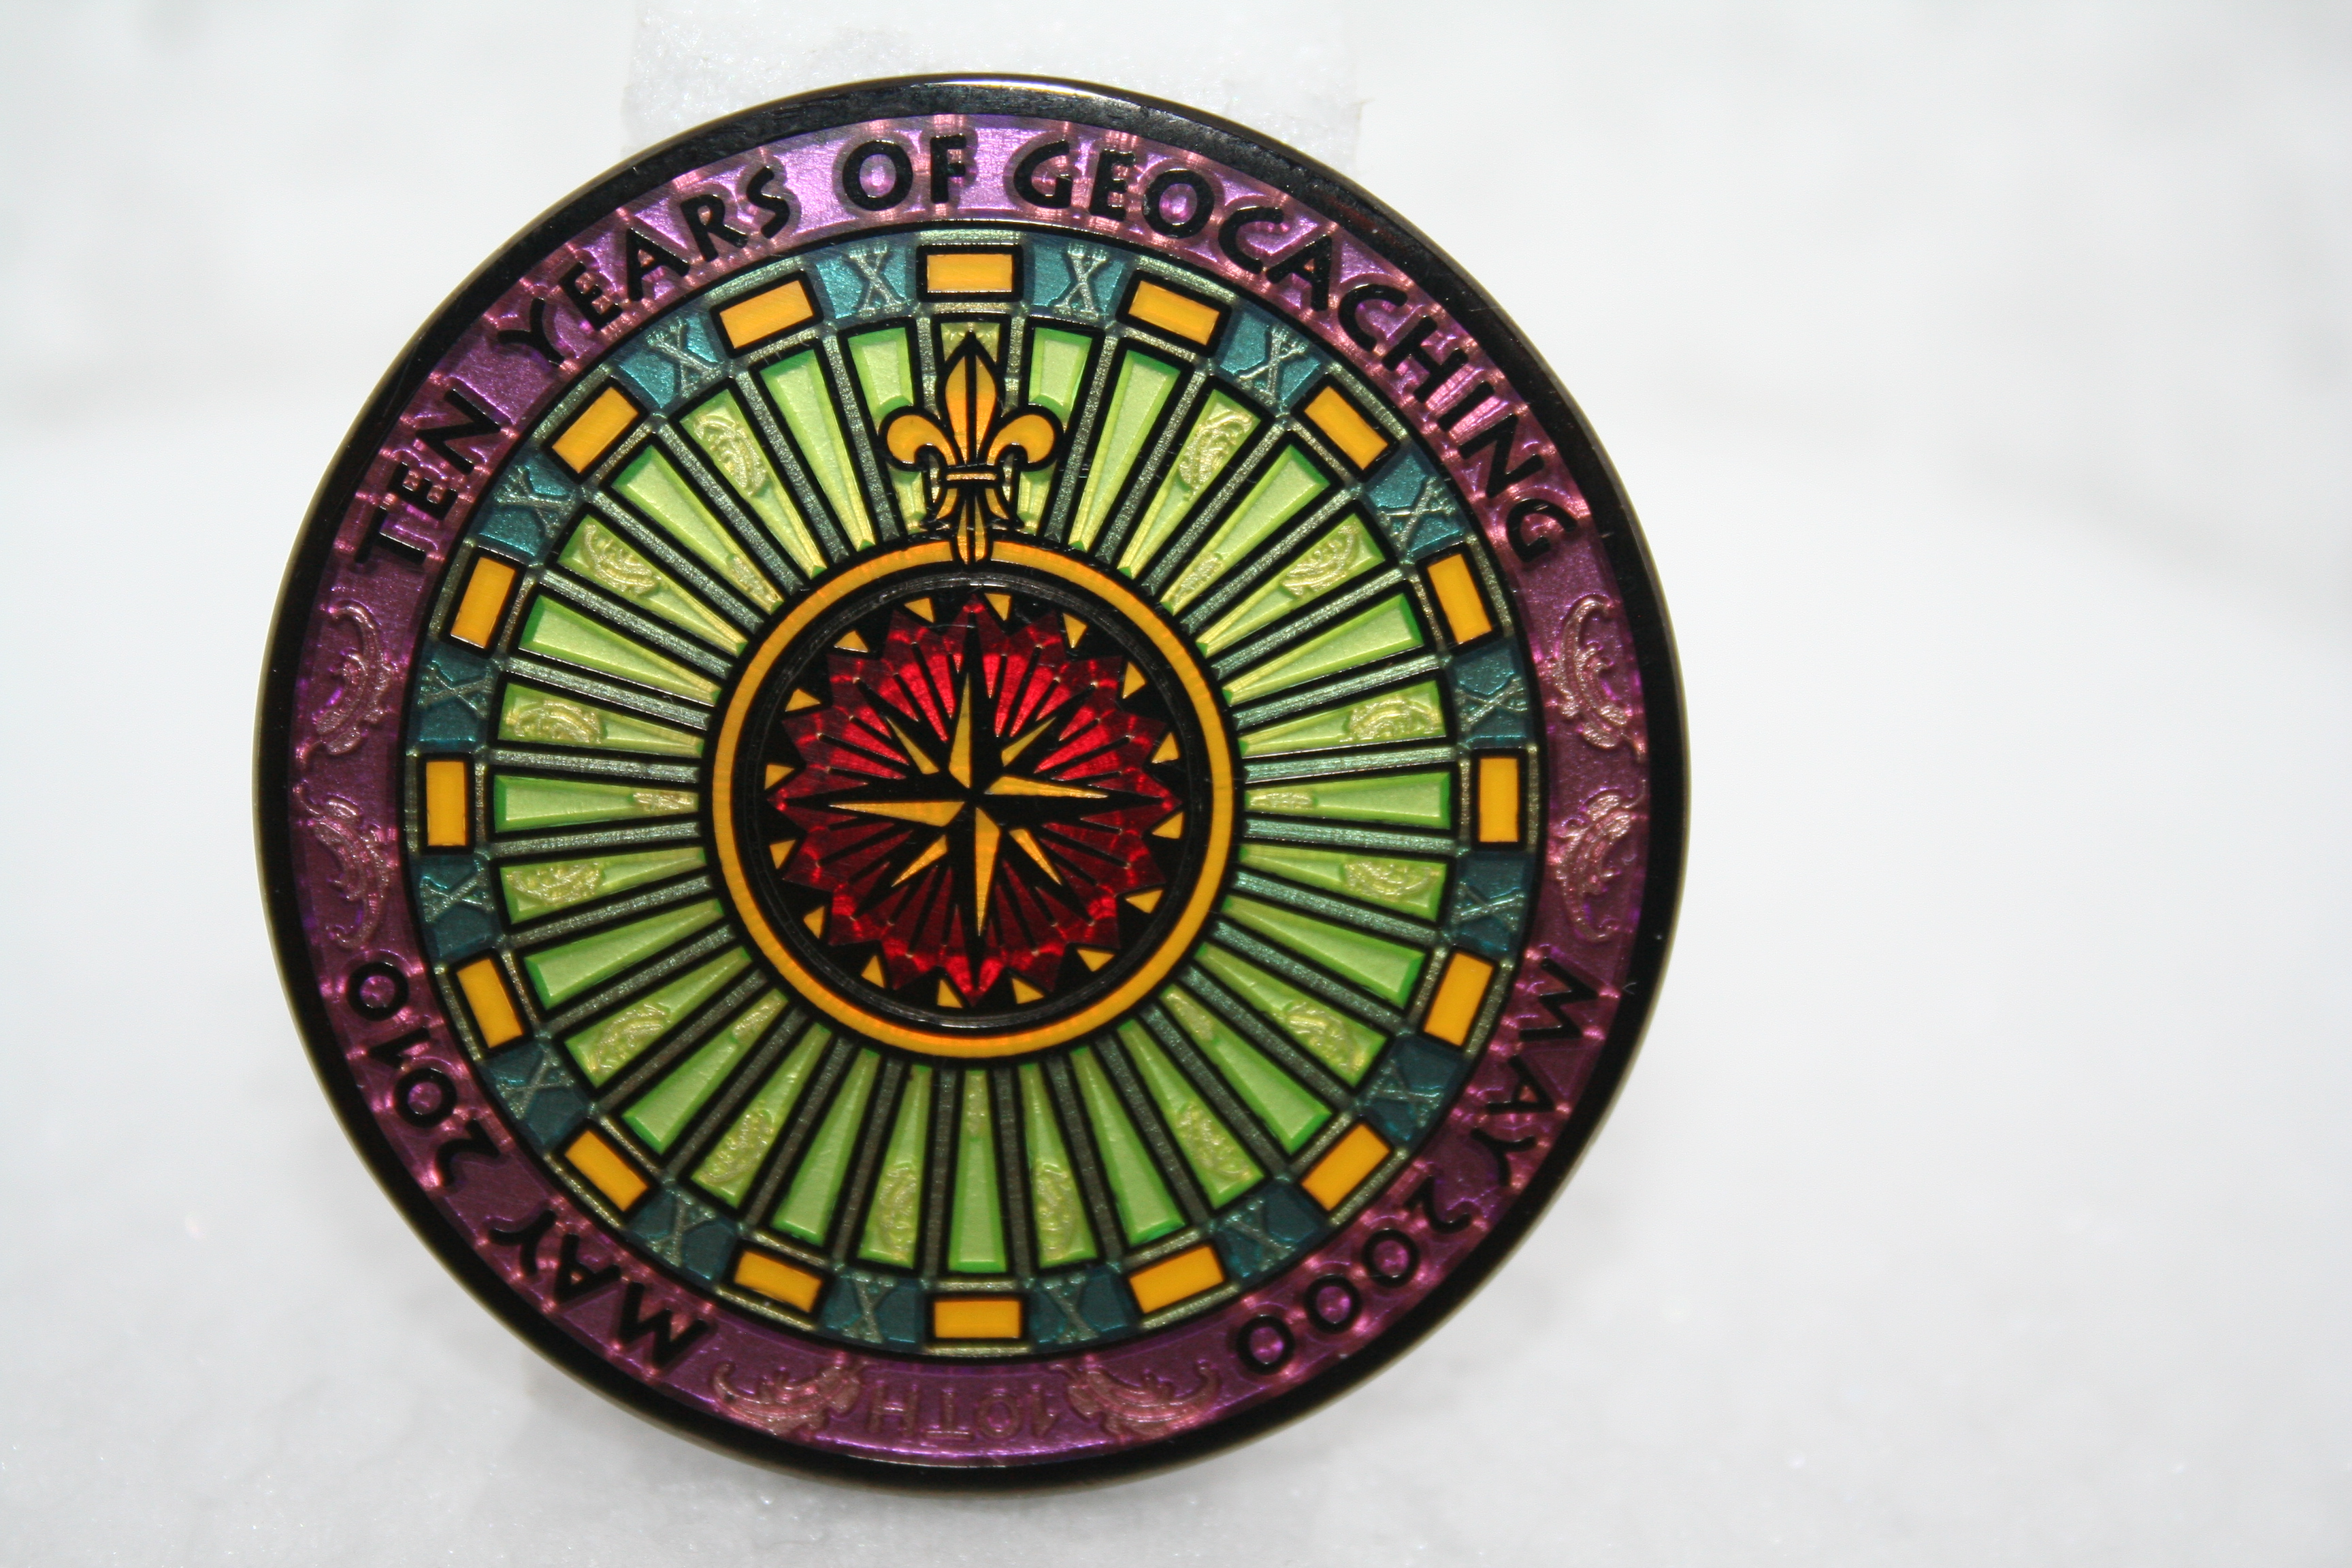 10 Years of Geocaching Multi Event Geocoin - Czech republic LE